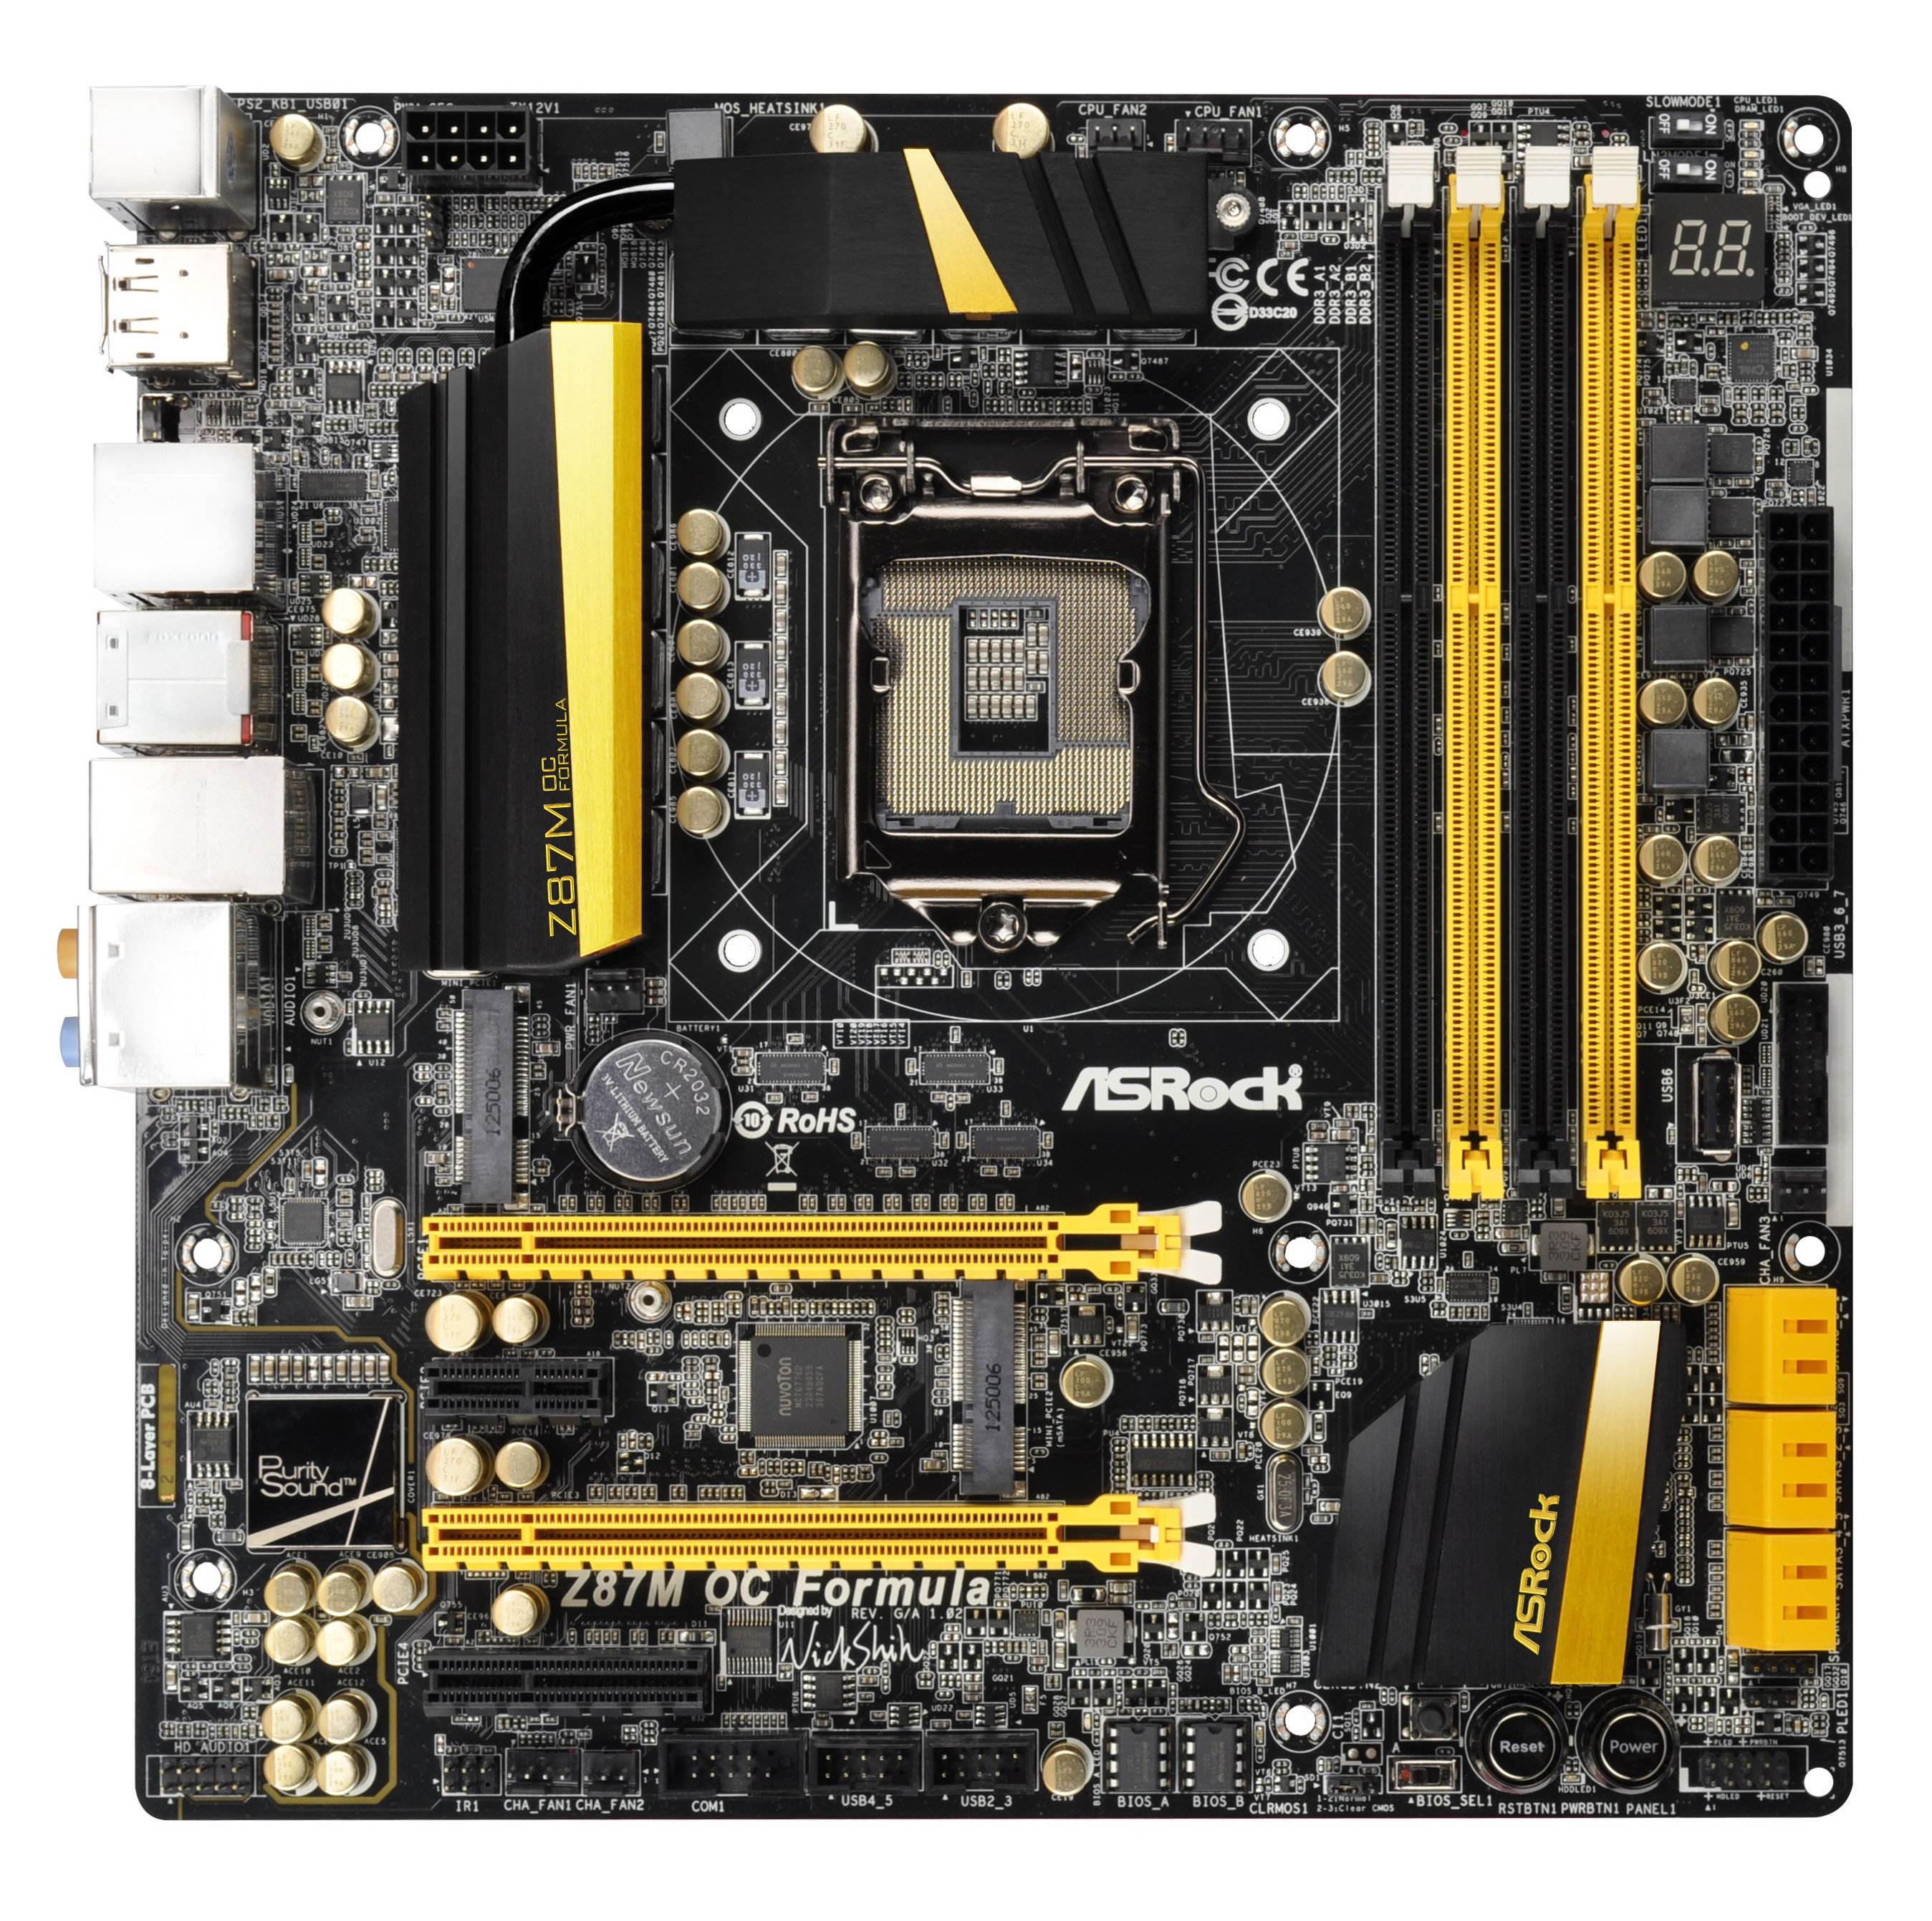 ASROCK Z87 OC FORMULA INTEL LAN WINDOWS 8.1 DRIVER